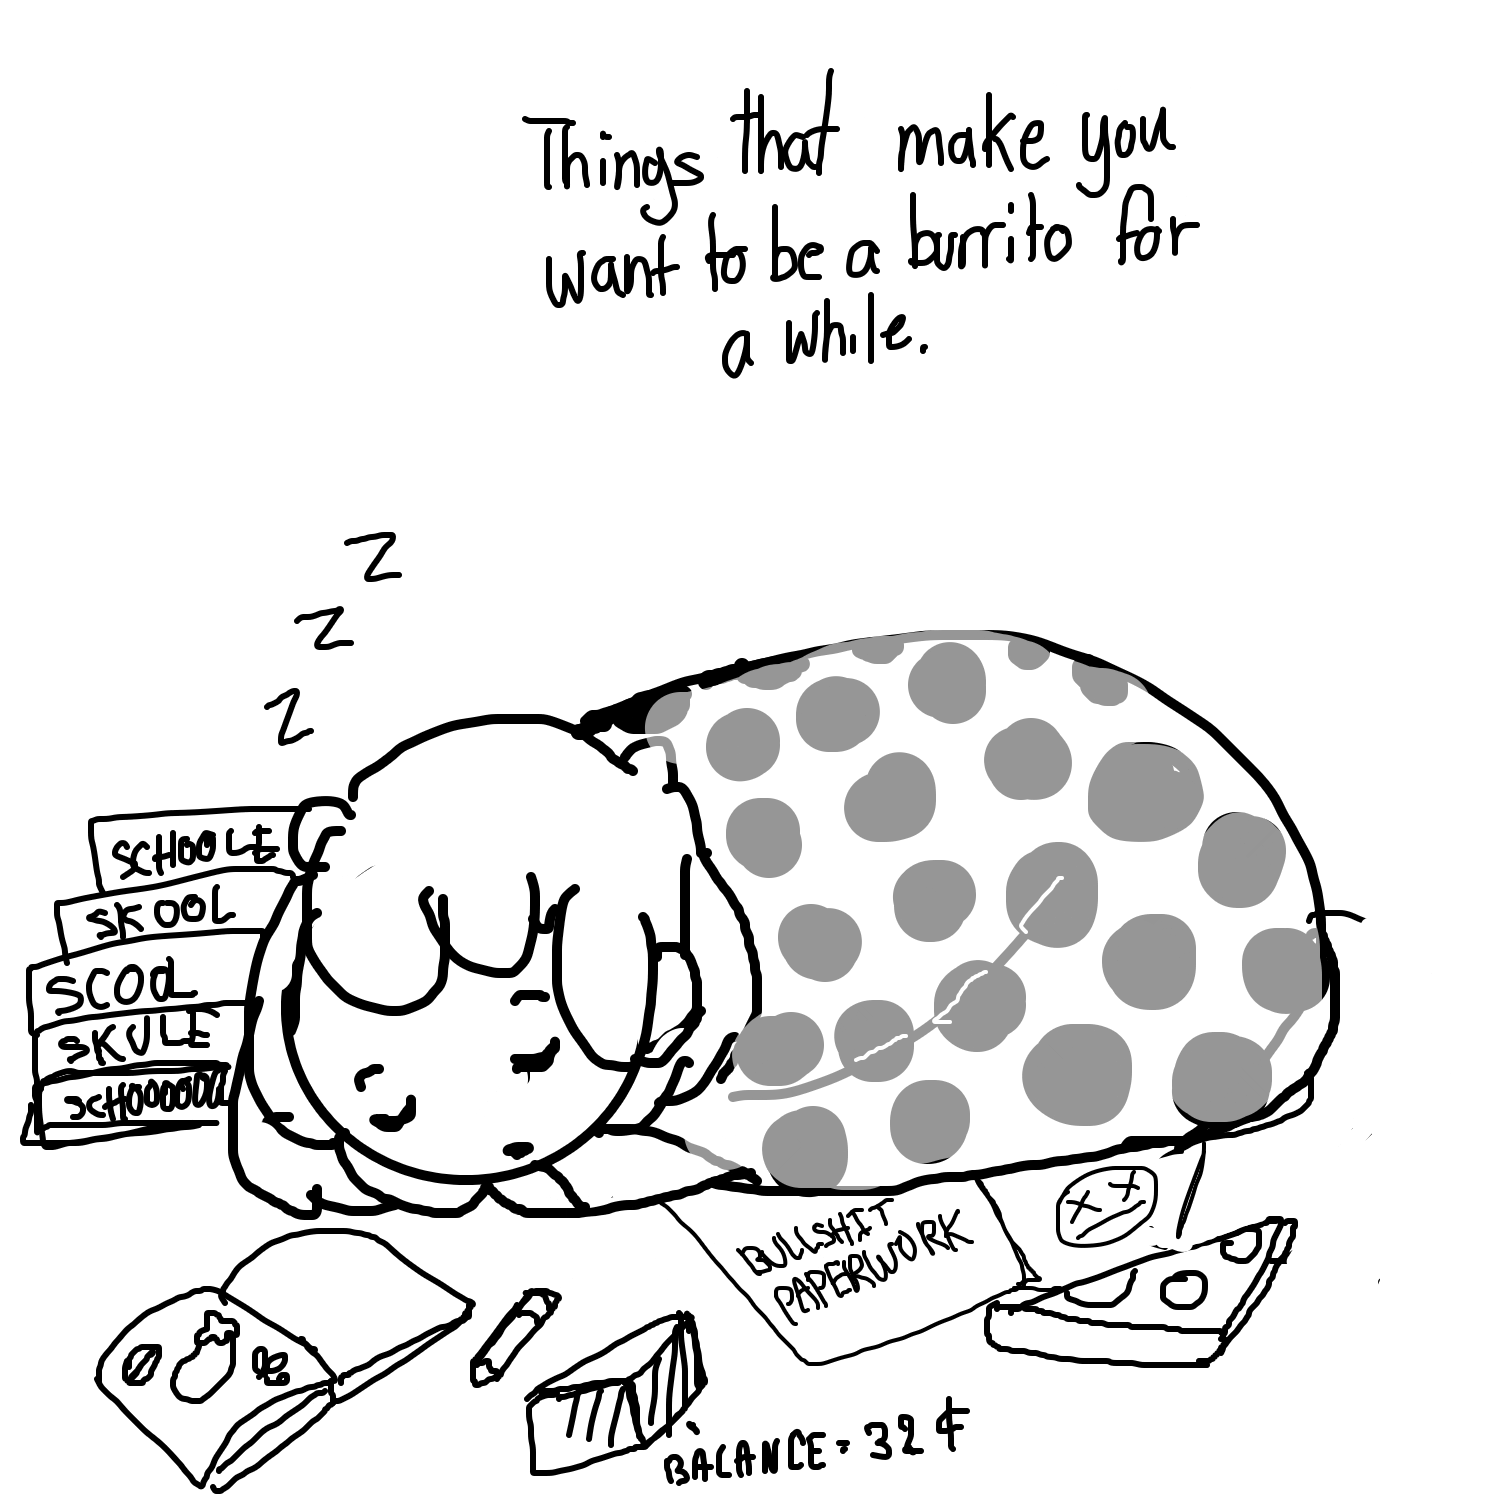 Drawing in Be a burrito  by Juleefish